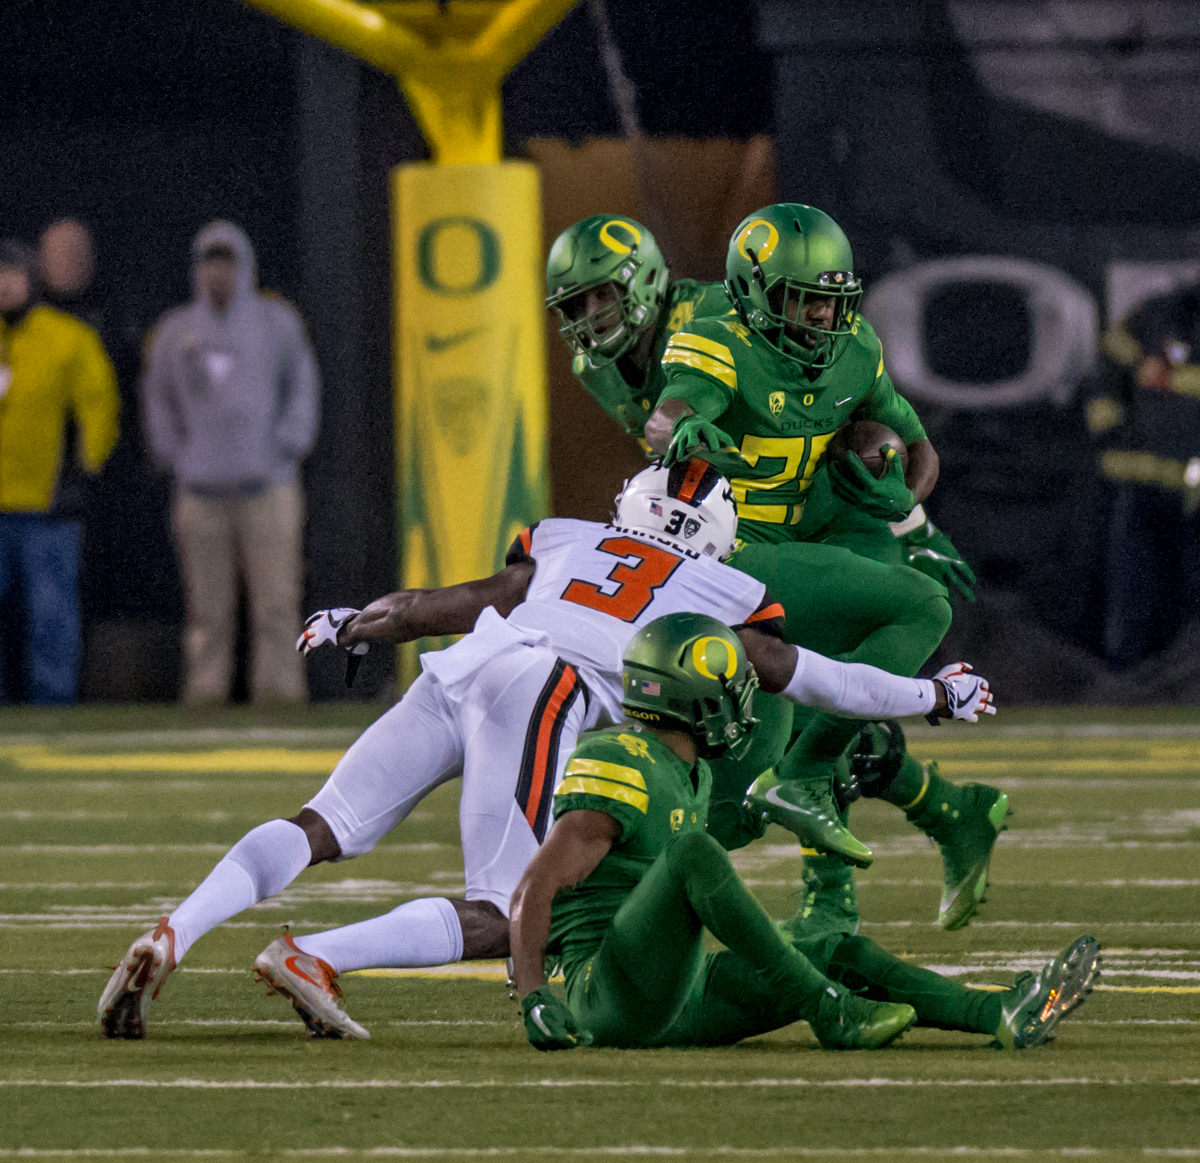 Oregon running back Kani Benoit (#29) pushes through a pack of Oregon State defenders. The Oregon Ducks defeated the Oregon State Beavers 69 to 10 in the 121st Civil War game at Autzen Stadium in Eugene, Ore. on Saturday November 25, 2017. Photo by Ben Lonergan, Oregon News Lab